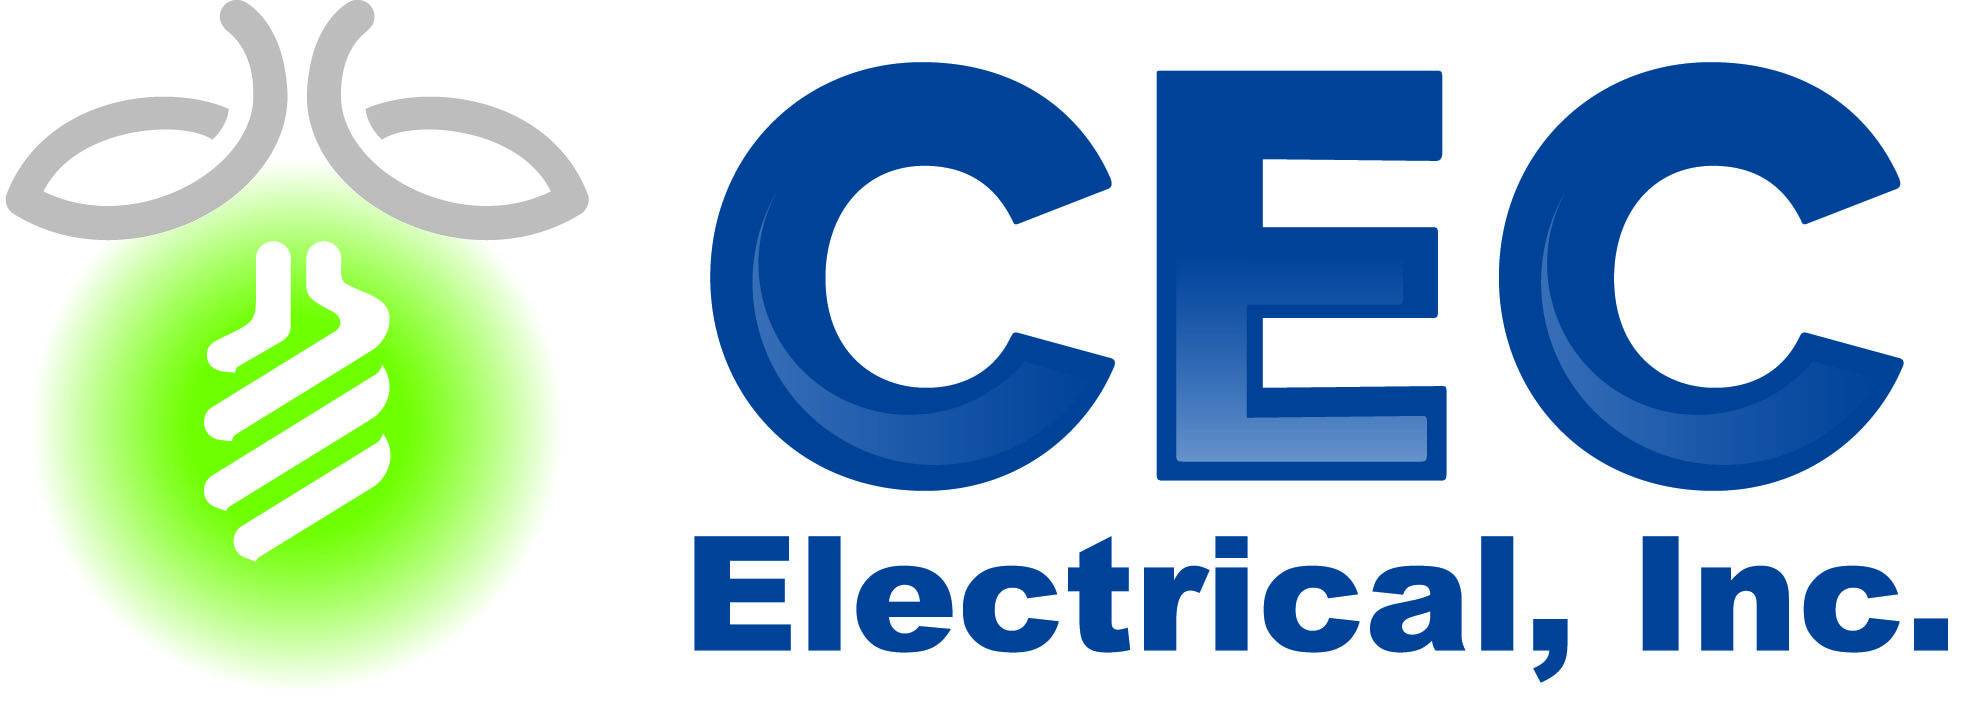 CEC_Electrical_Logo2.jpg